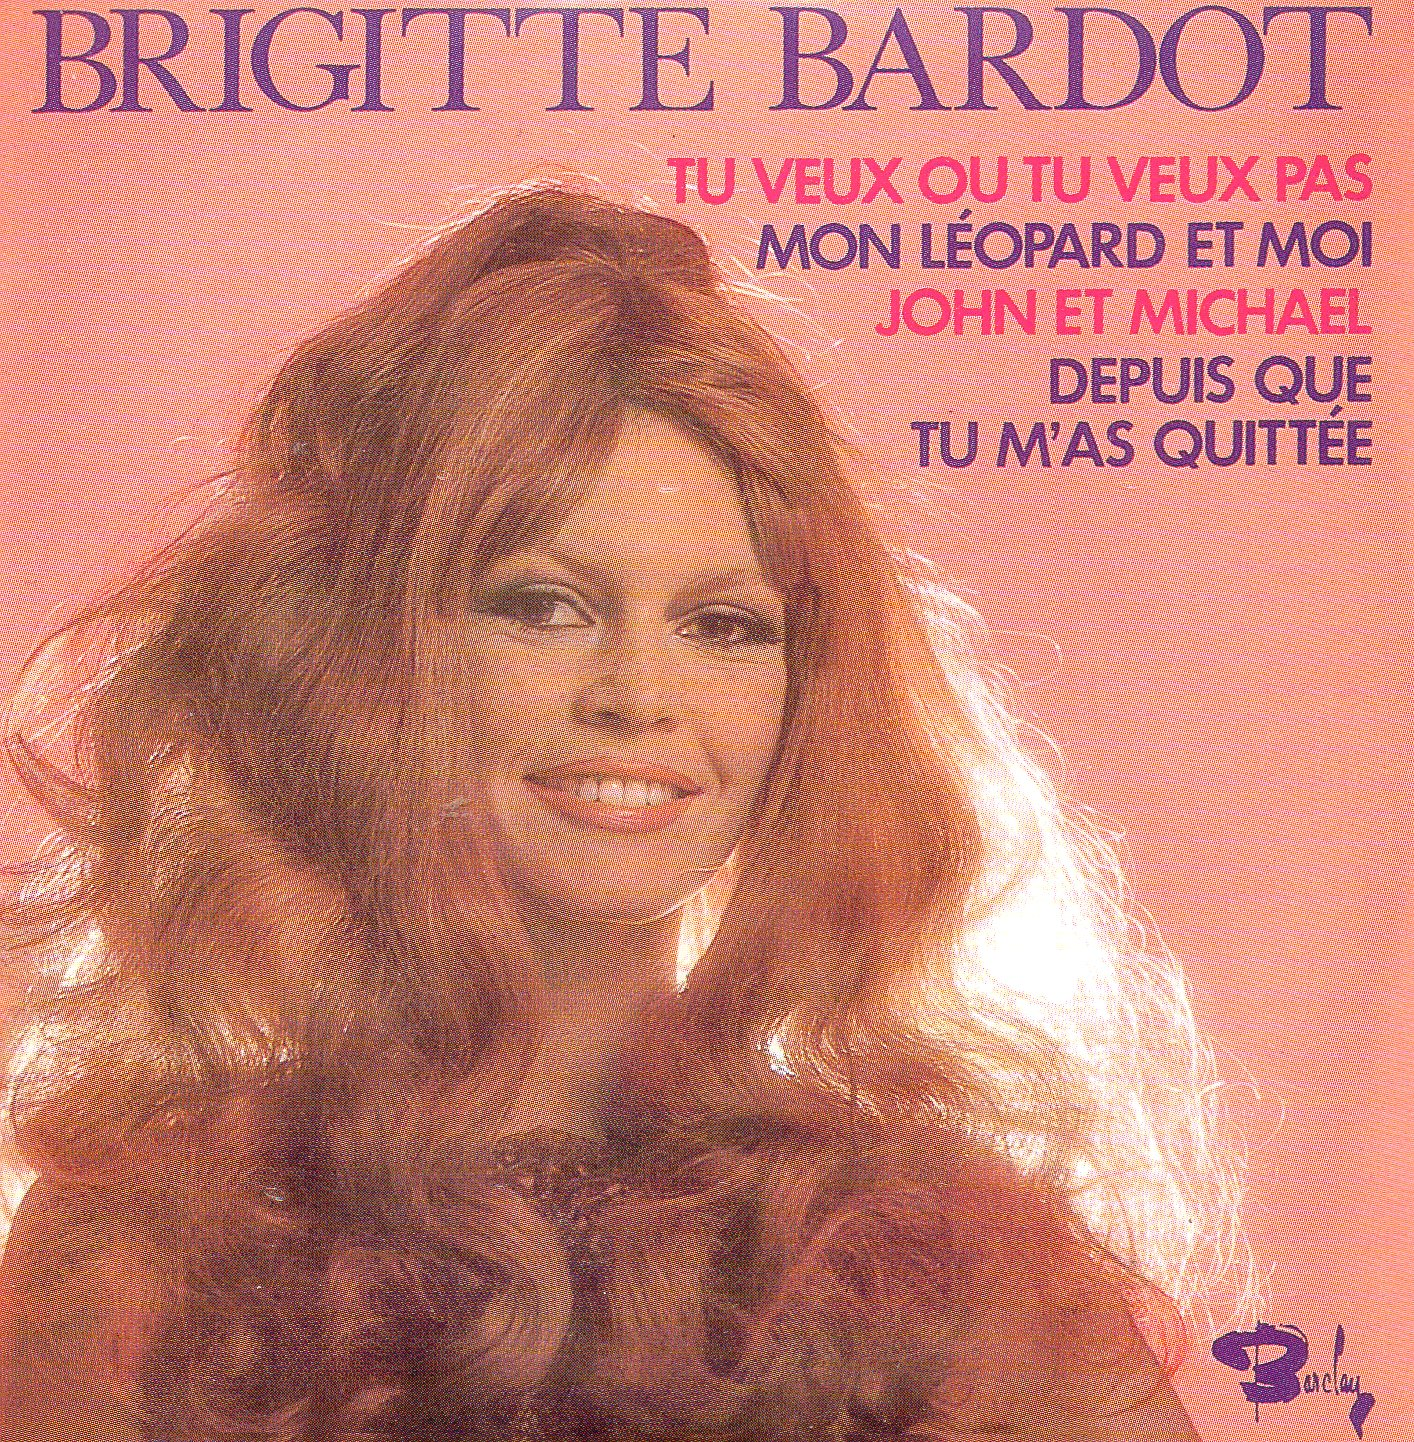 BRIGITTE BARDOT - Tu veux ou tu veux pas ltd ed  CARD SLEEVE/ Original 60s french Sleeve ! 4 tracks - CD single